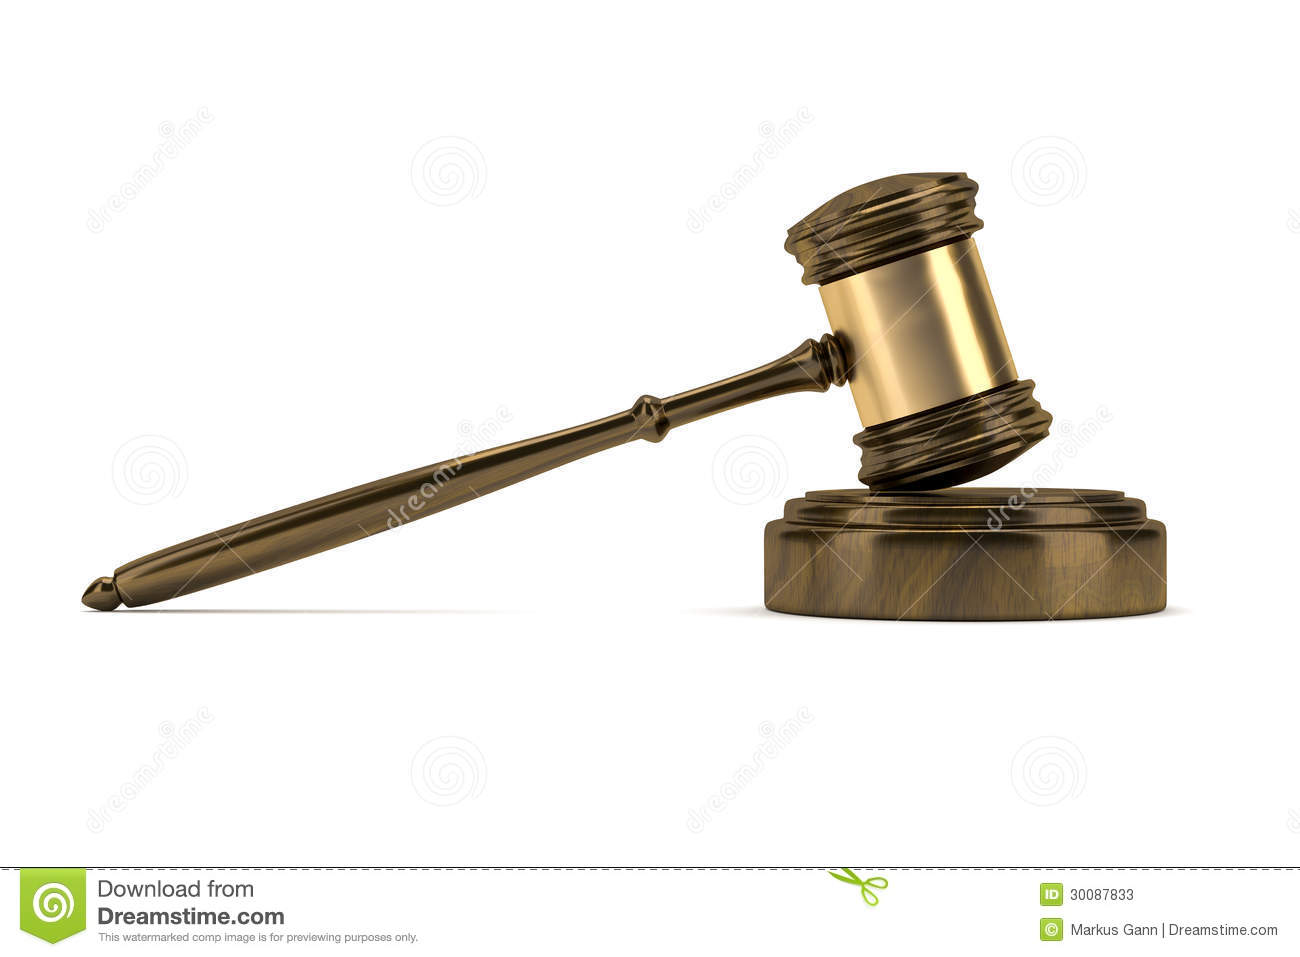 judge gavel - DriverLayer Search Engine